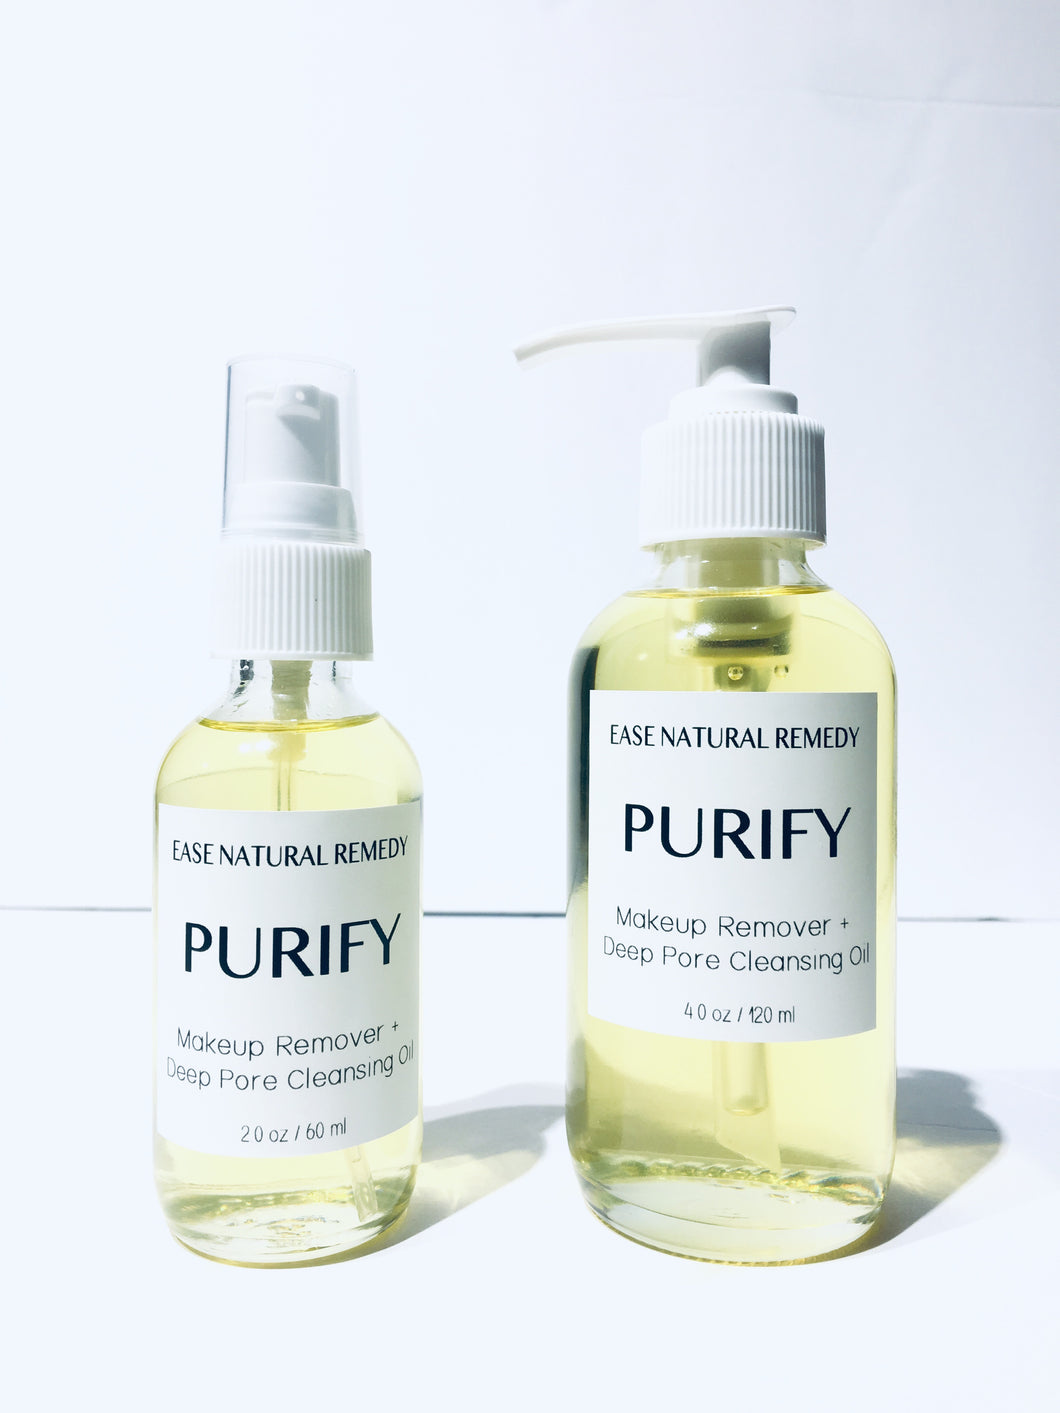 PURIFY - 100% Organic Makeup Remover + Deep Pore Cleansing Oil